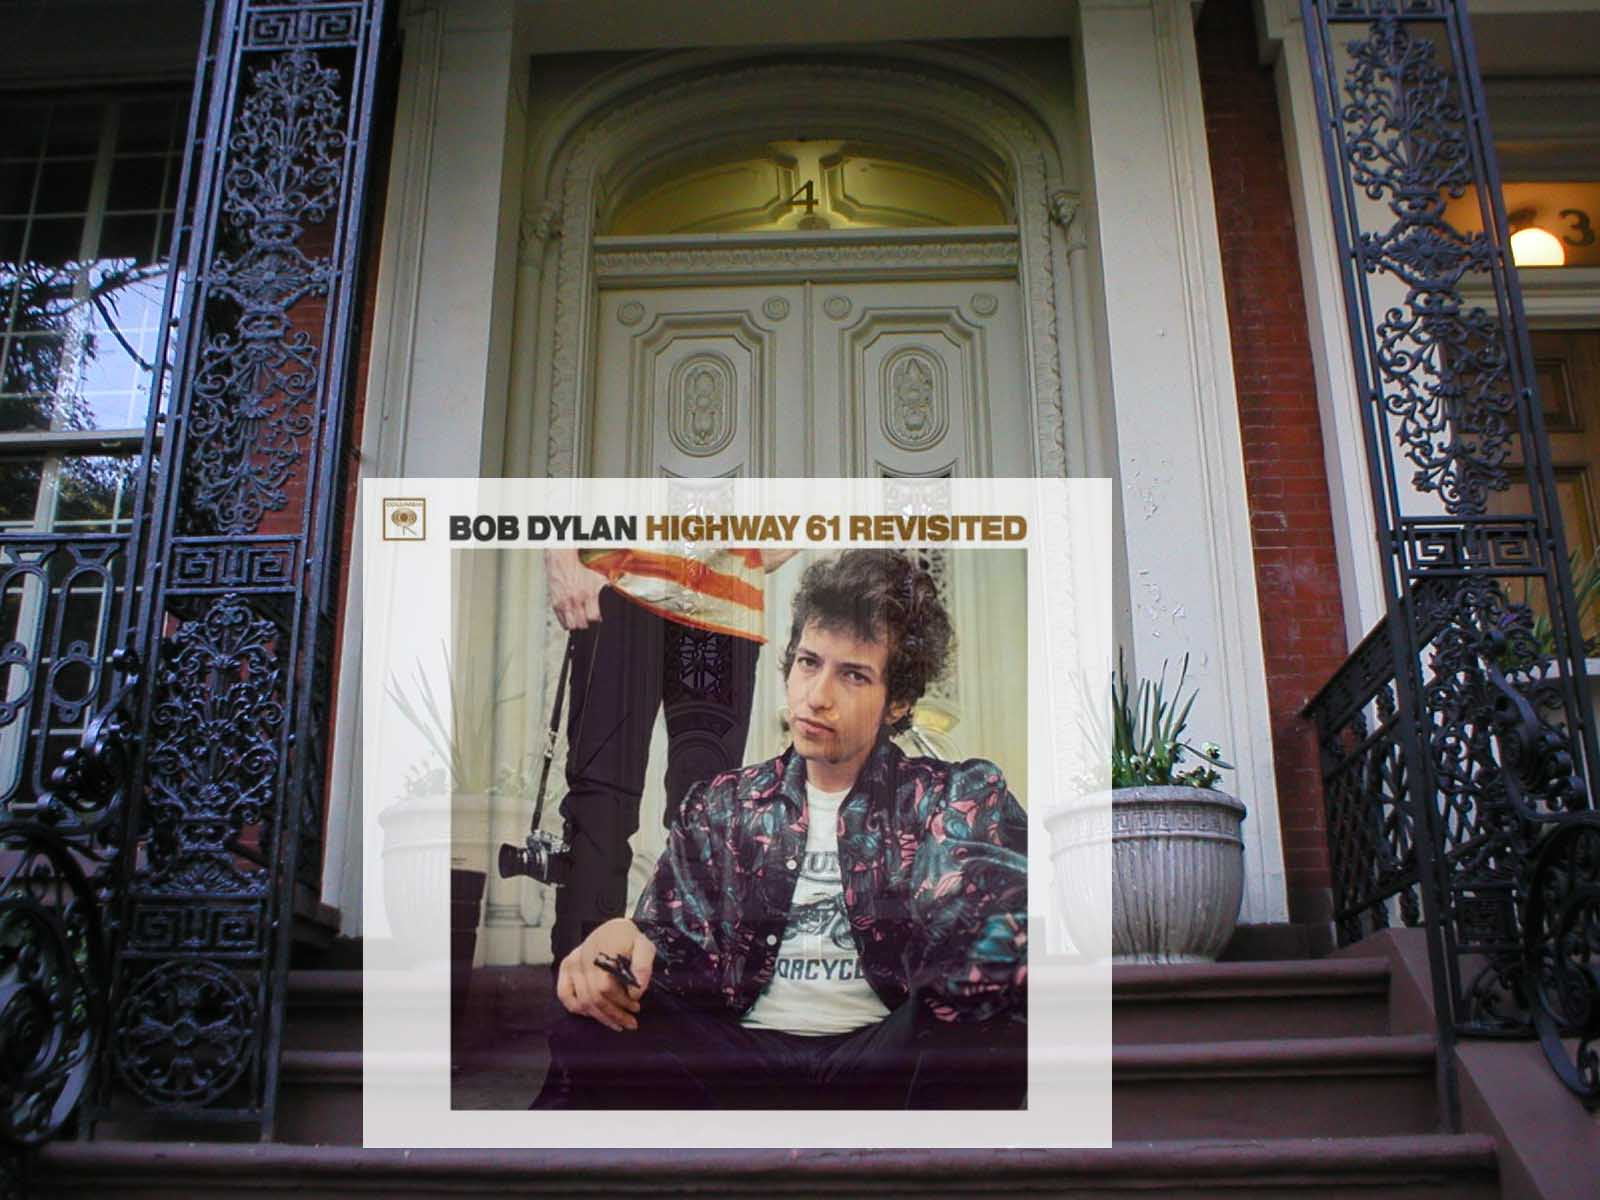 Album cover photo by Daniel Kramer. Taken in front of Albert Grossman's former residence at 4 Gramercy Park West. Overlay with album cover from PopSpotsNYC.com.